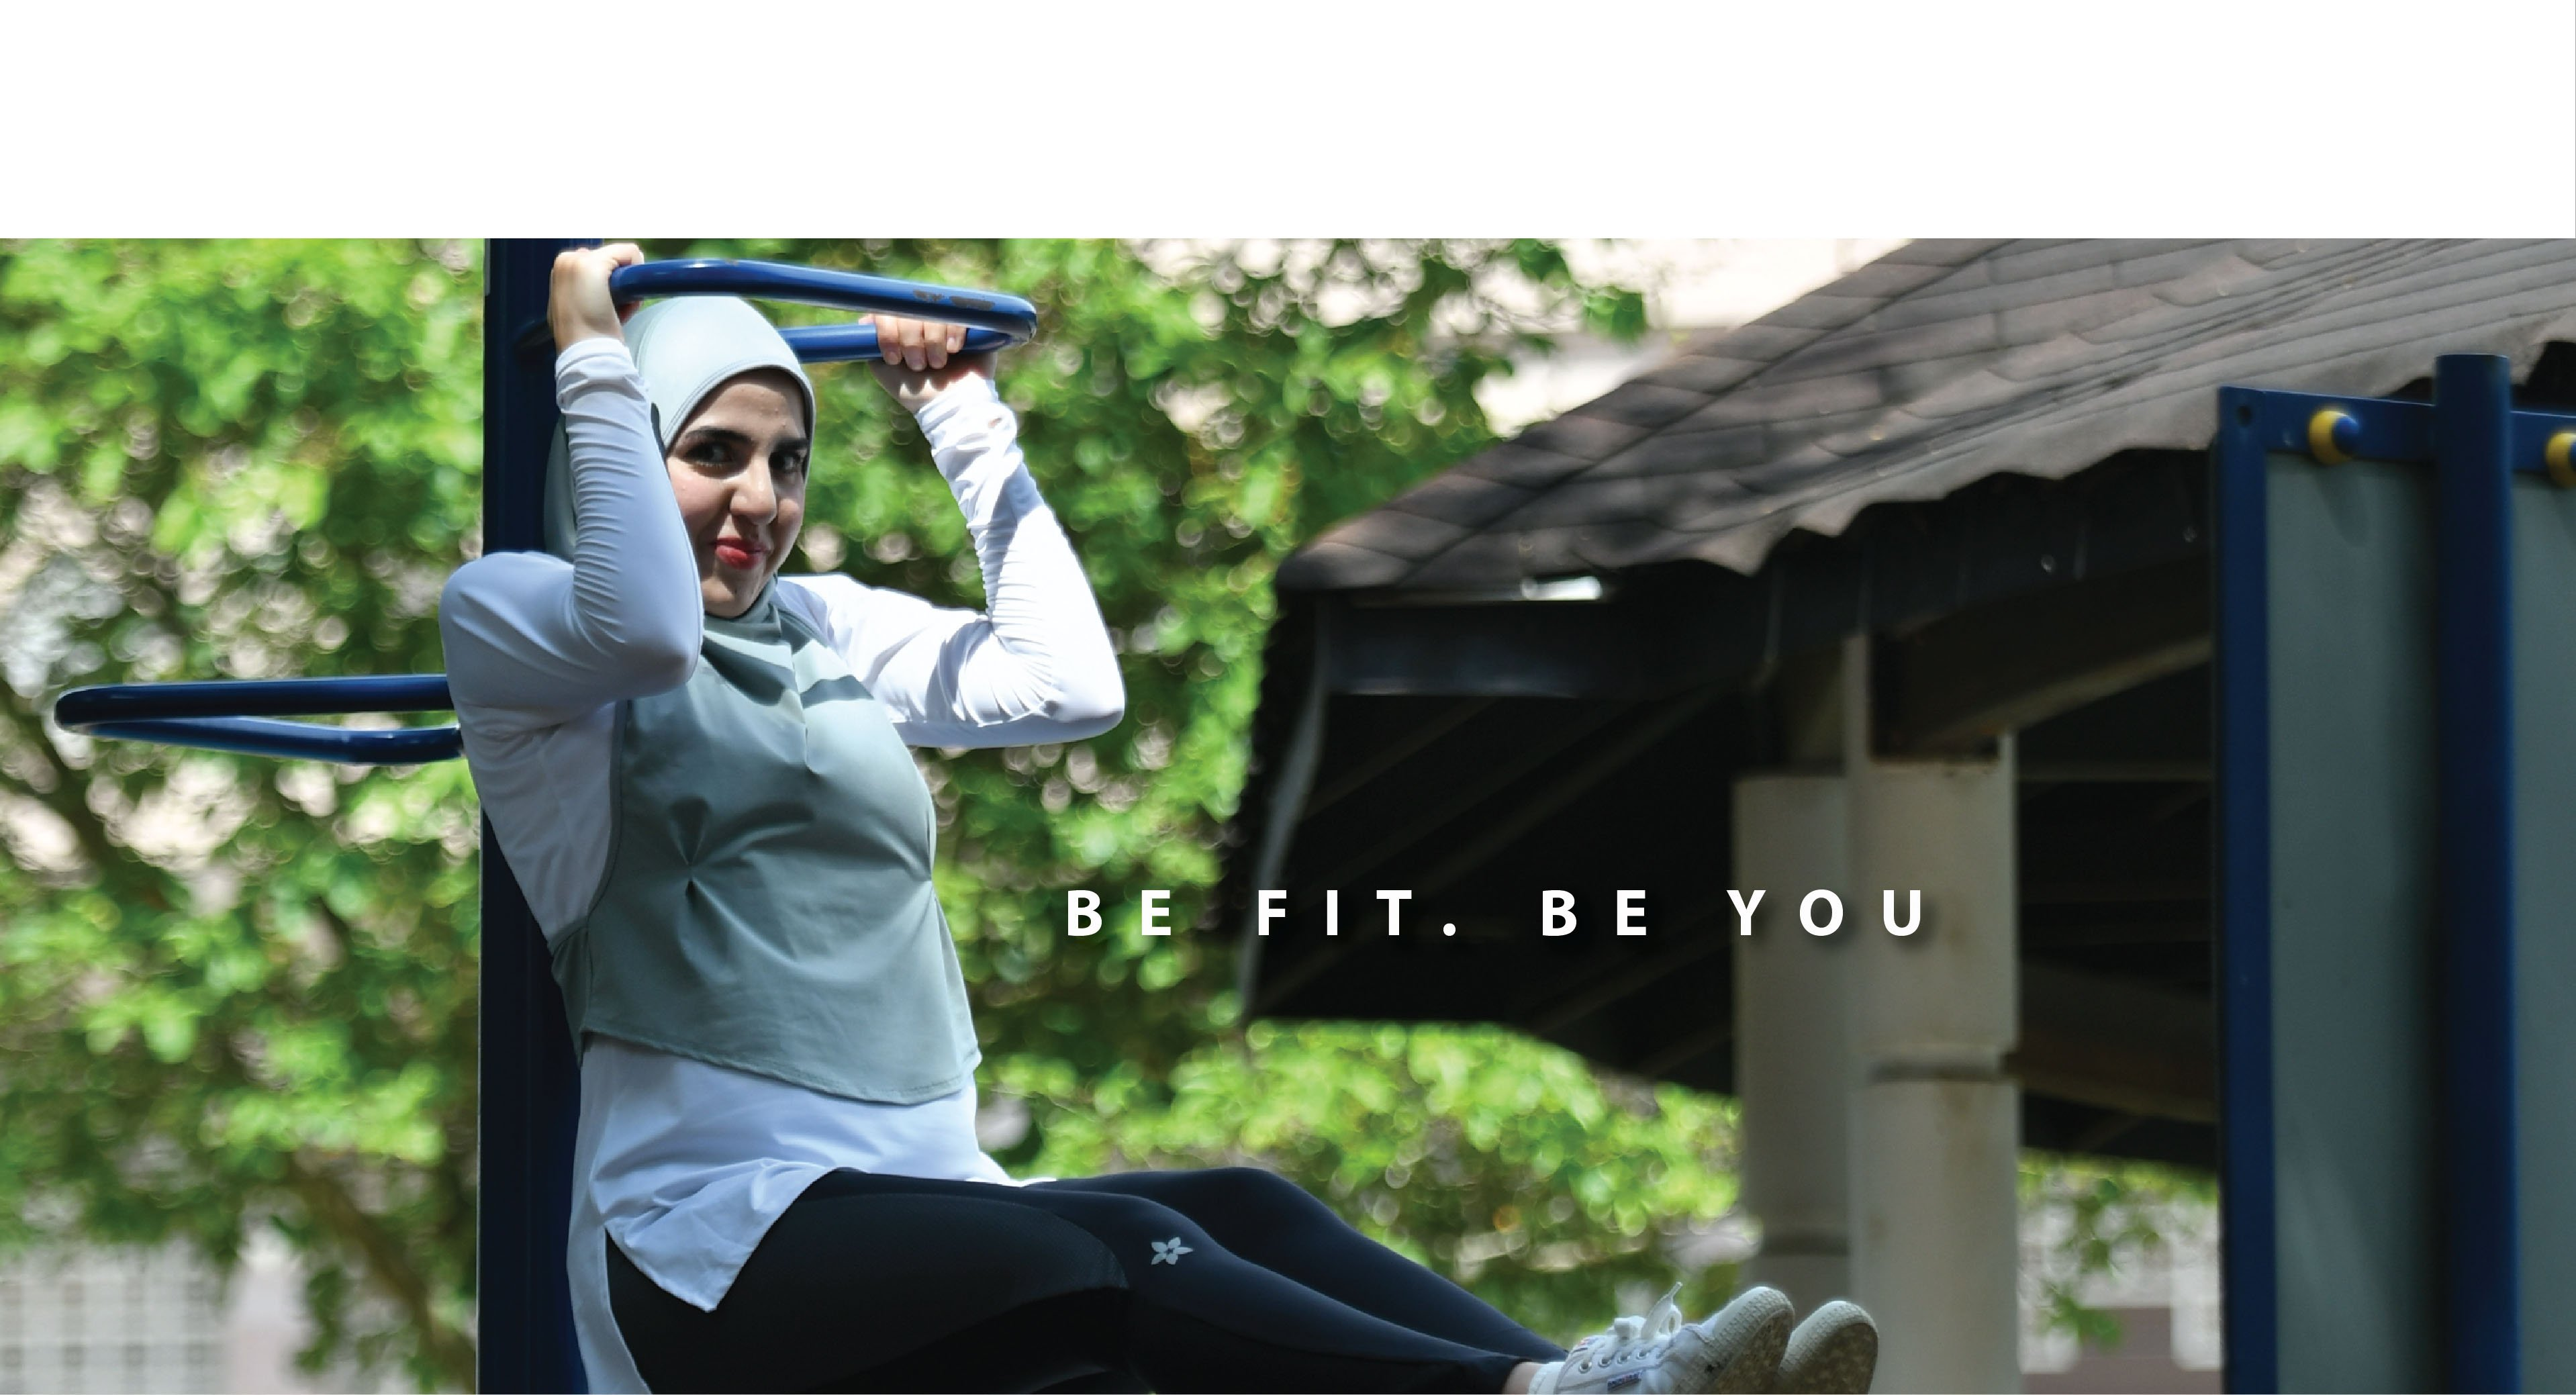 Be Fit. Be You